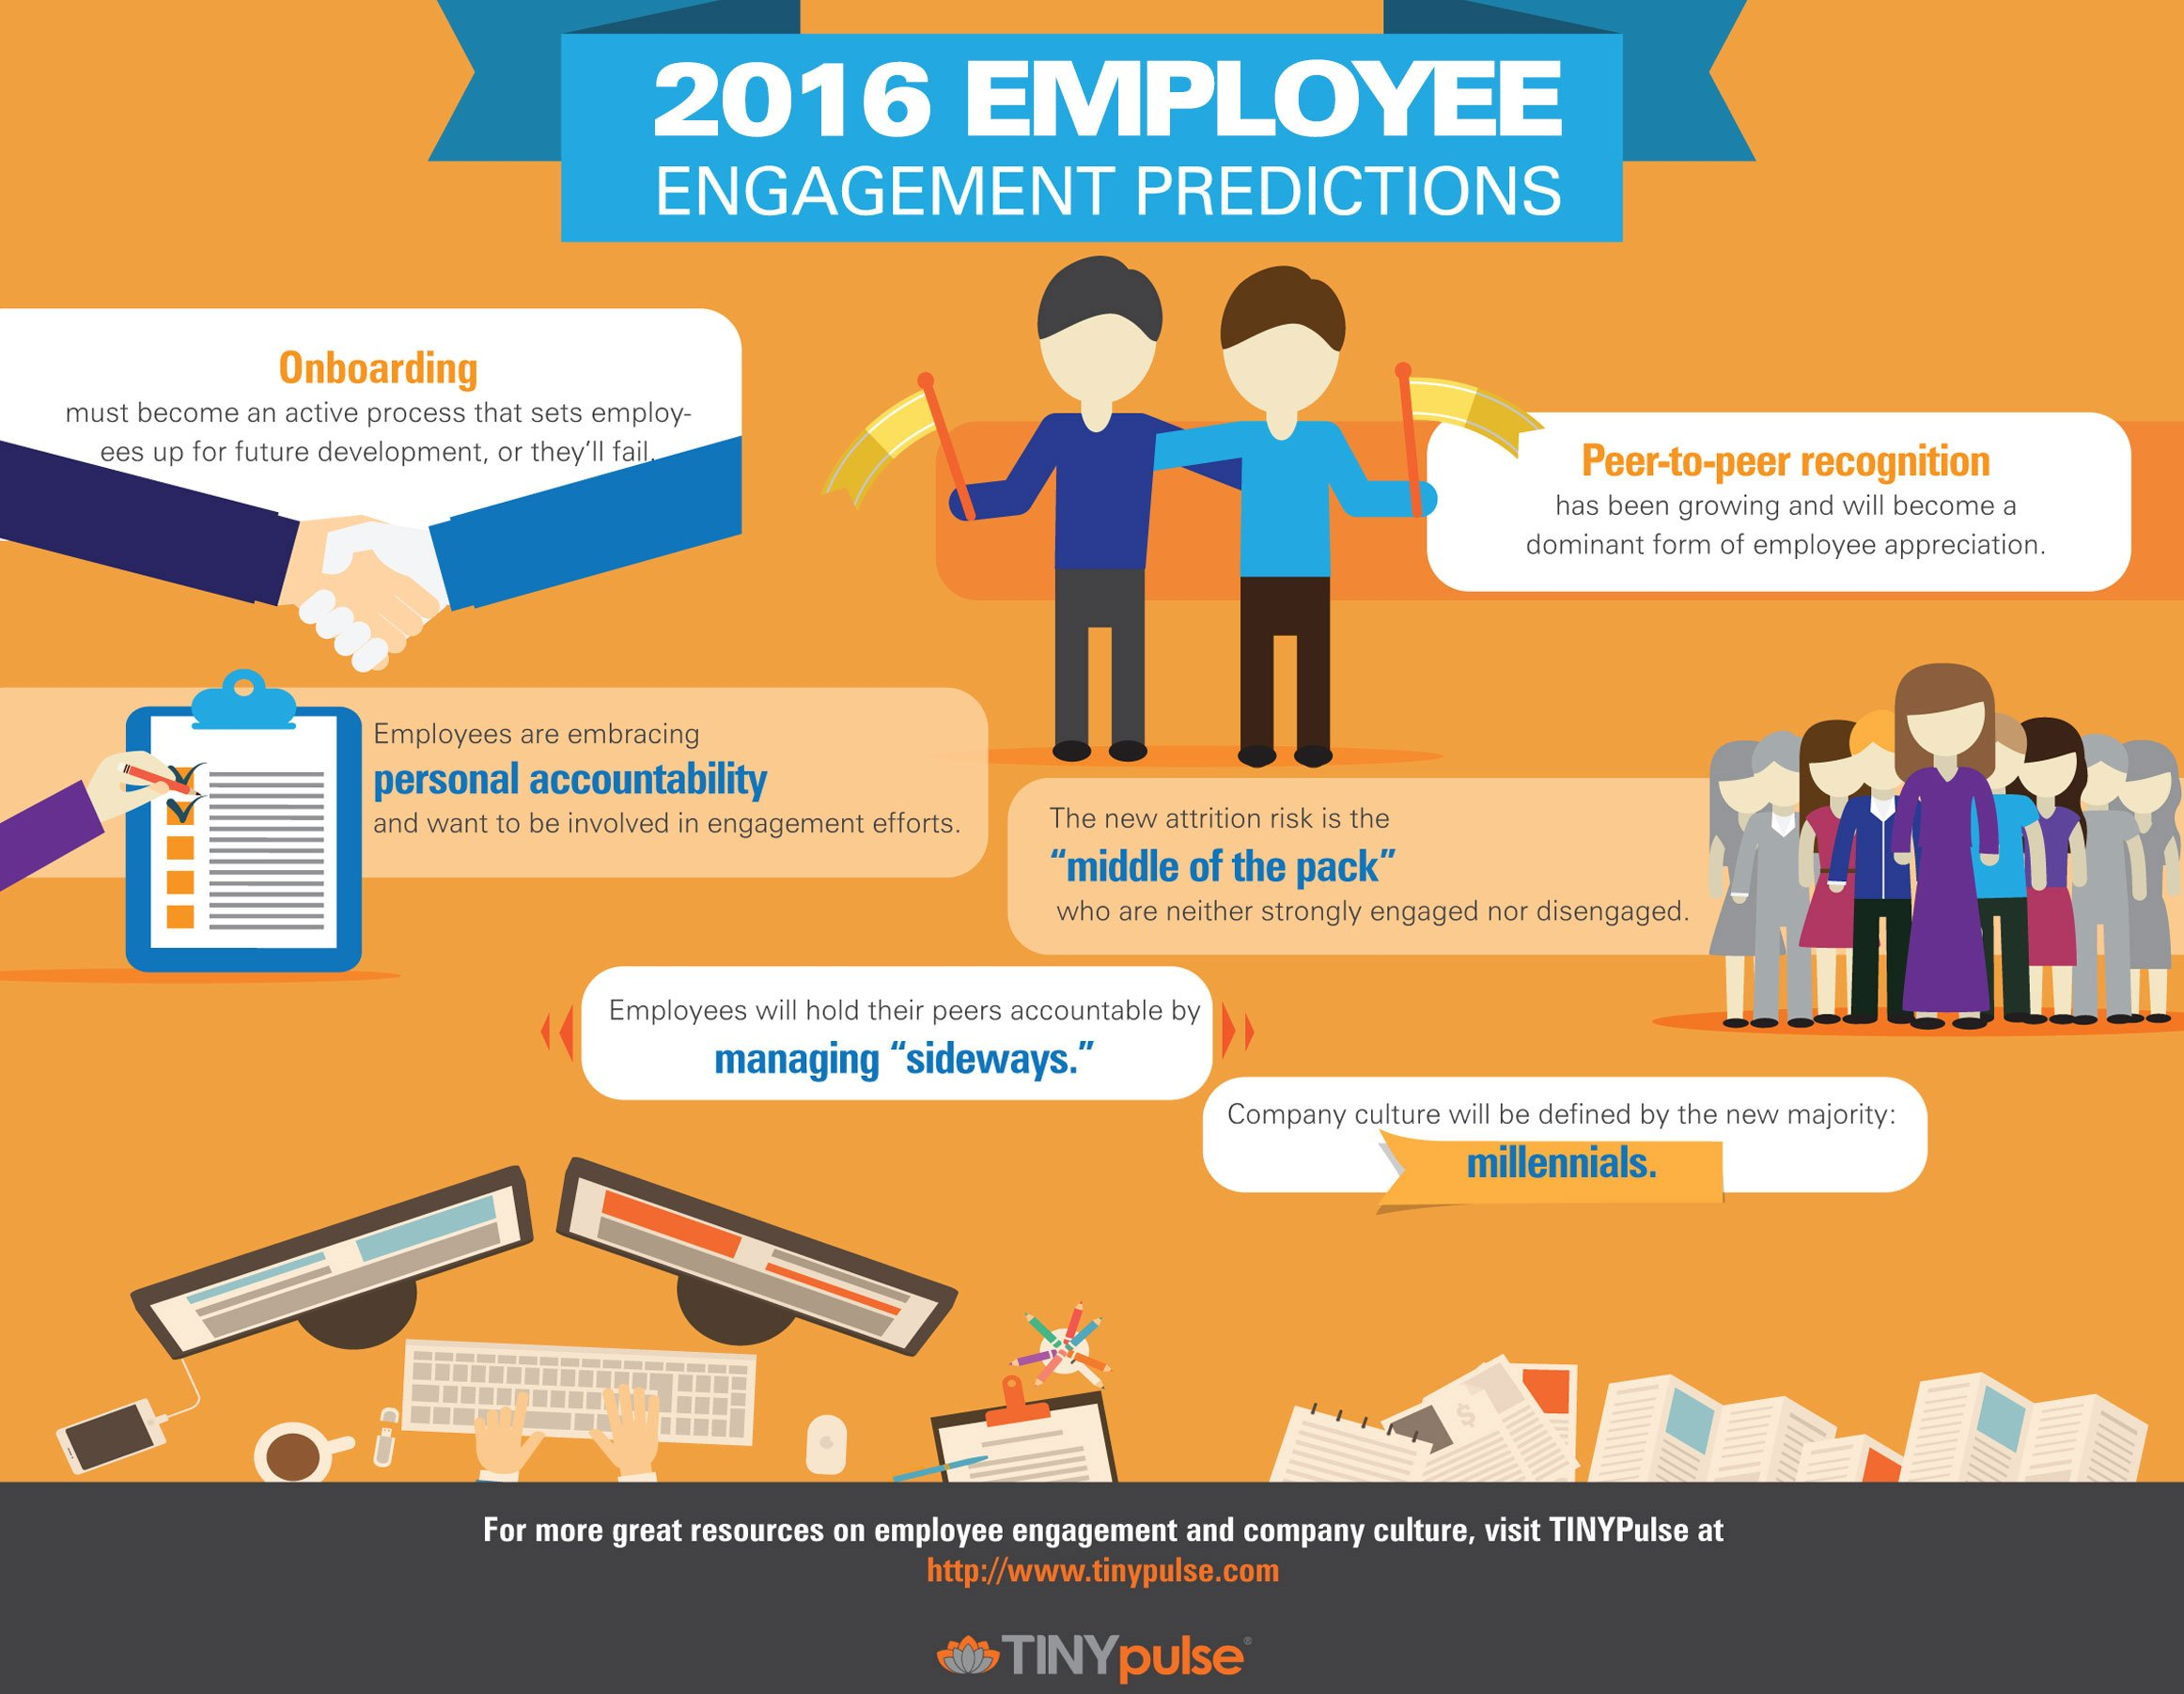 2016 Employee Engagement Predictions by TINYpulse